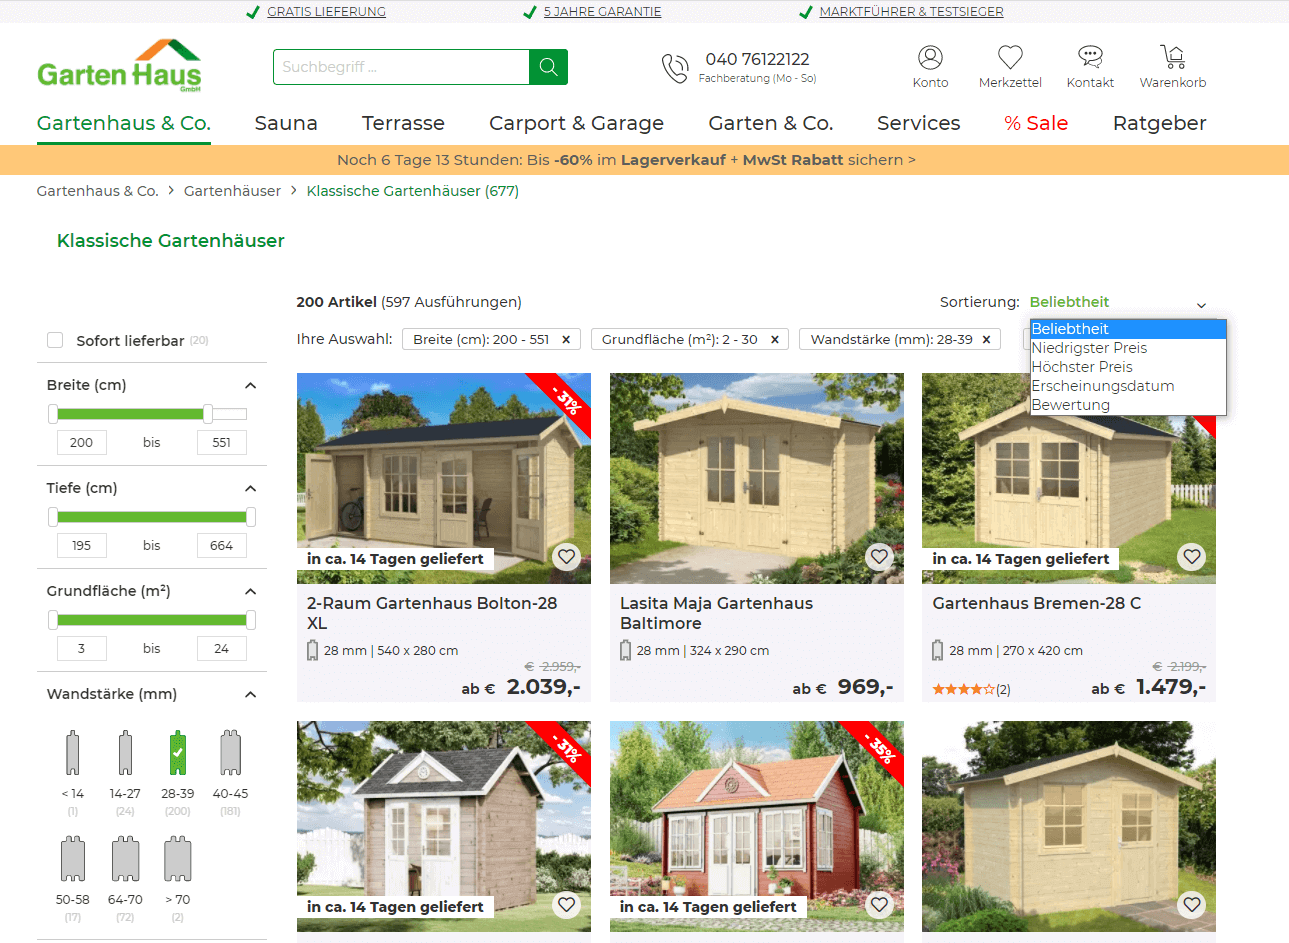 Example of sorting and filter functions of the onsite search in the A-Z Gartenhaus online shop